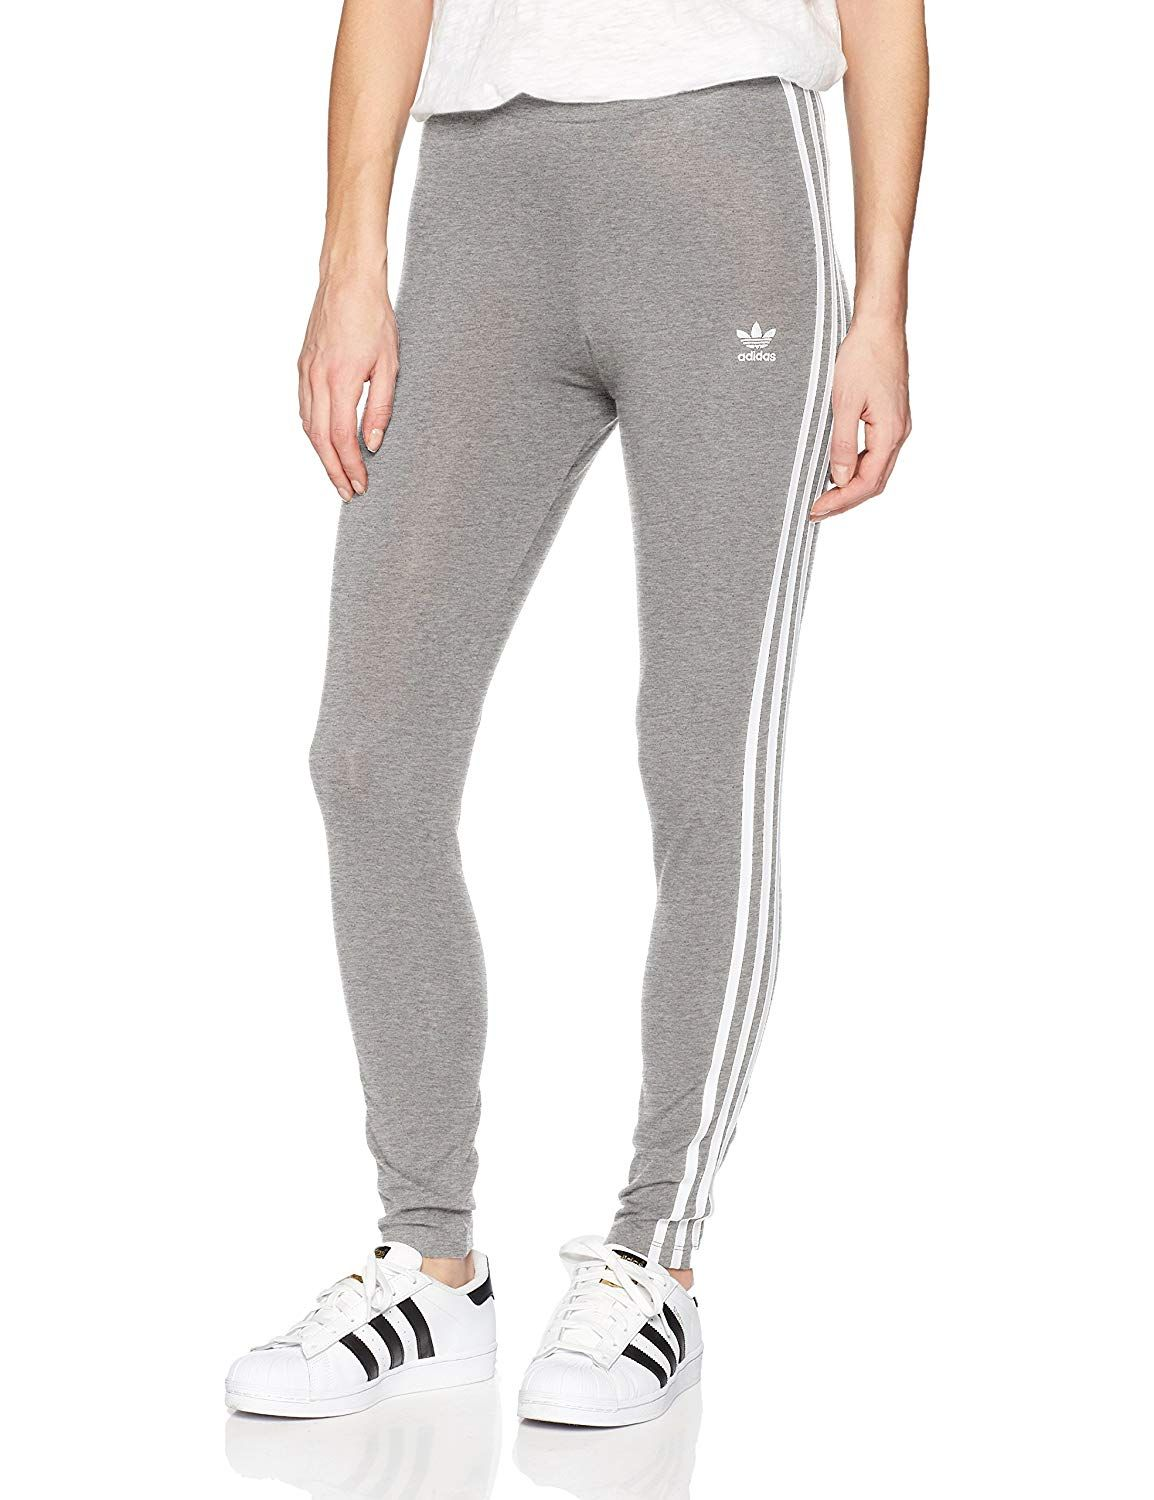 adidas Originals Women's 3Stripes Leggings 4.1 out of 5